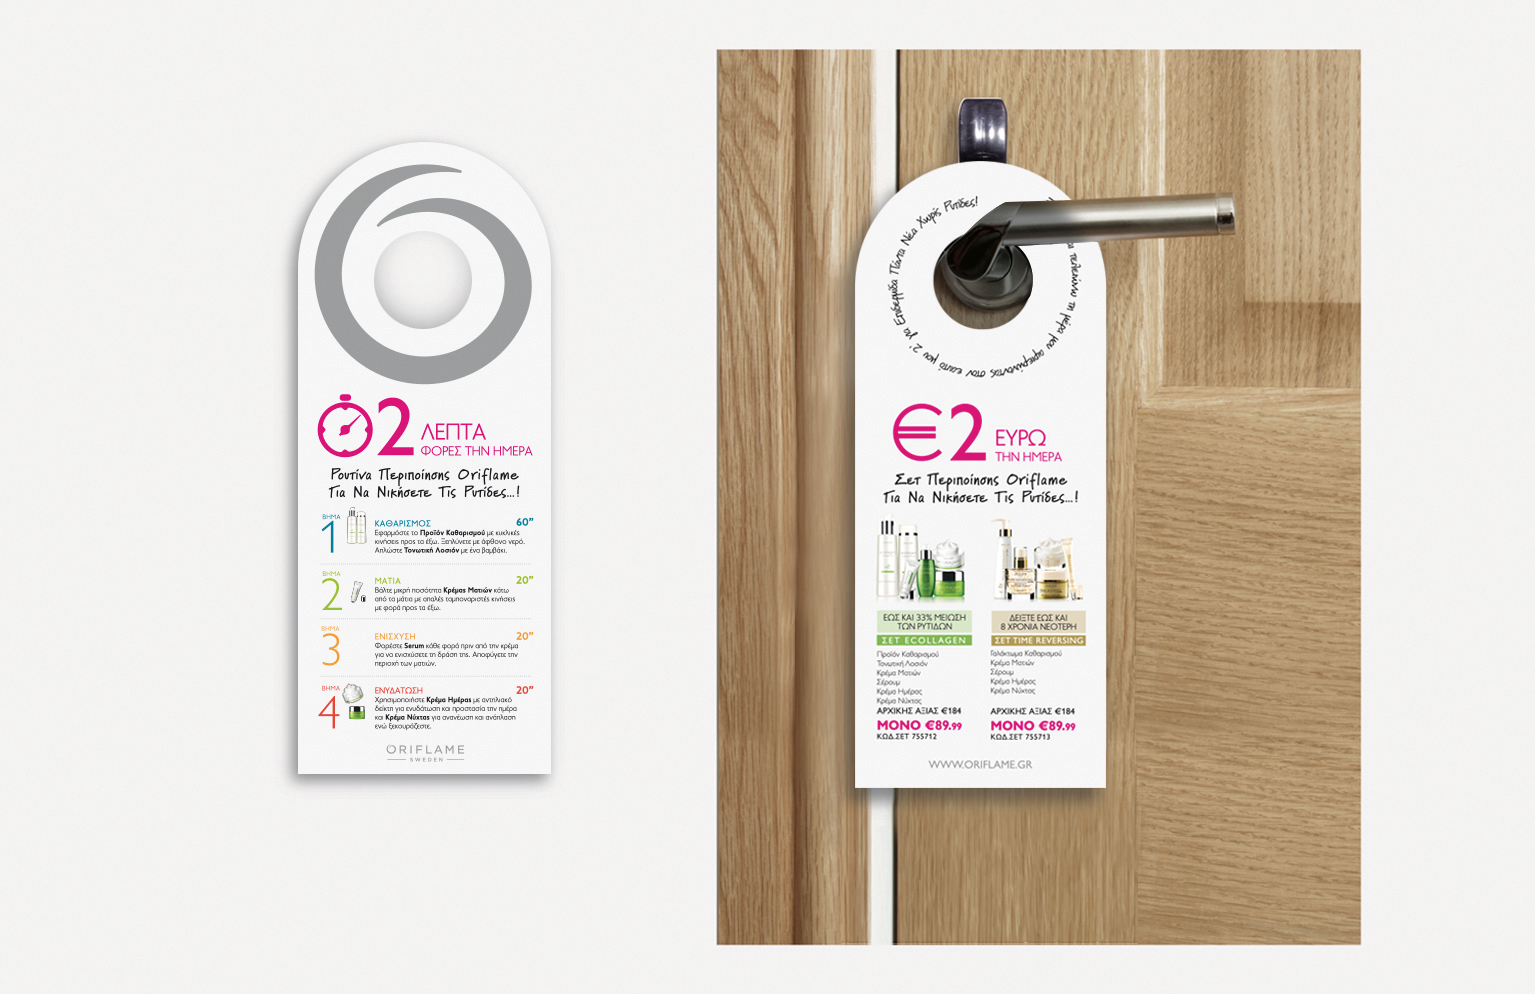 OEIFLAME  door-handle – obs print advertising – creative solutions ab97791e0b0